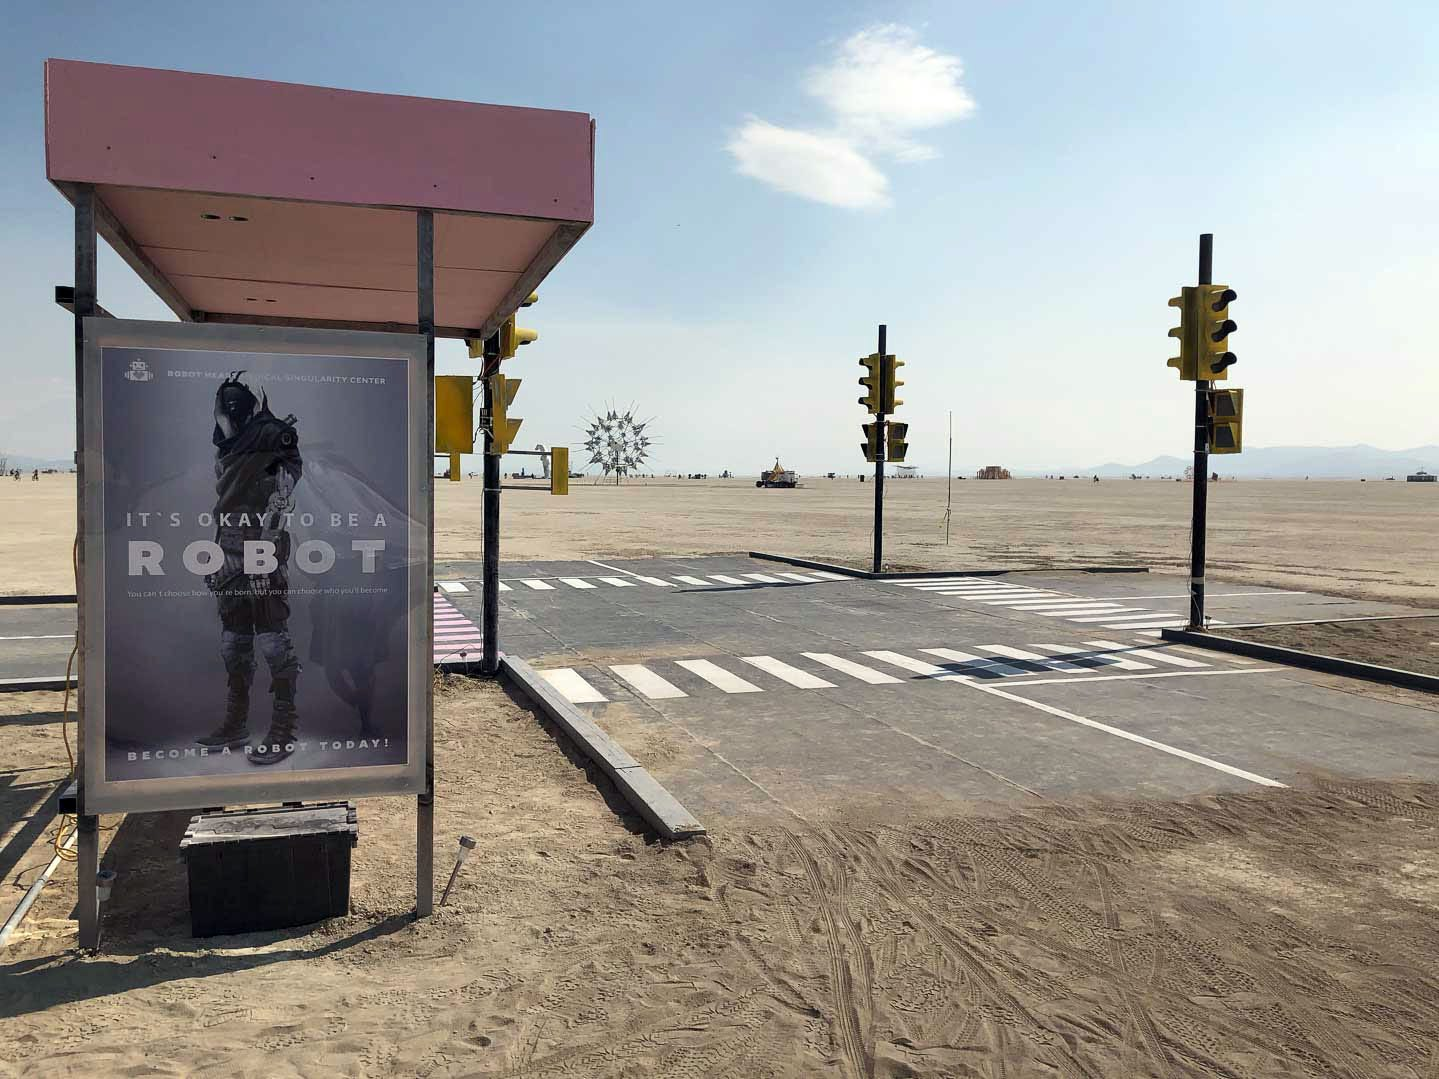 A fully recreated intersection with bus stop was built on the playa at Burning Man 2018.